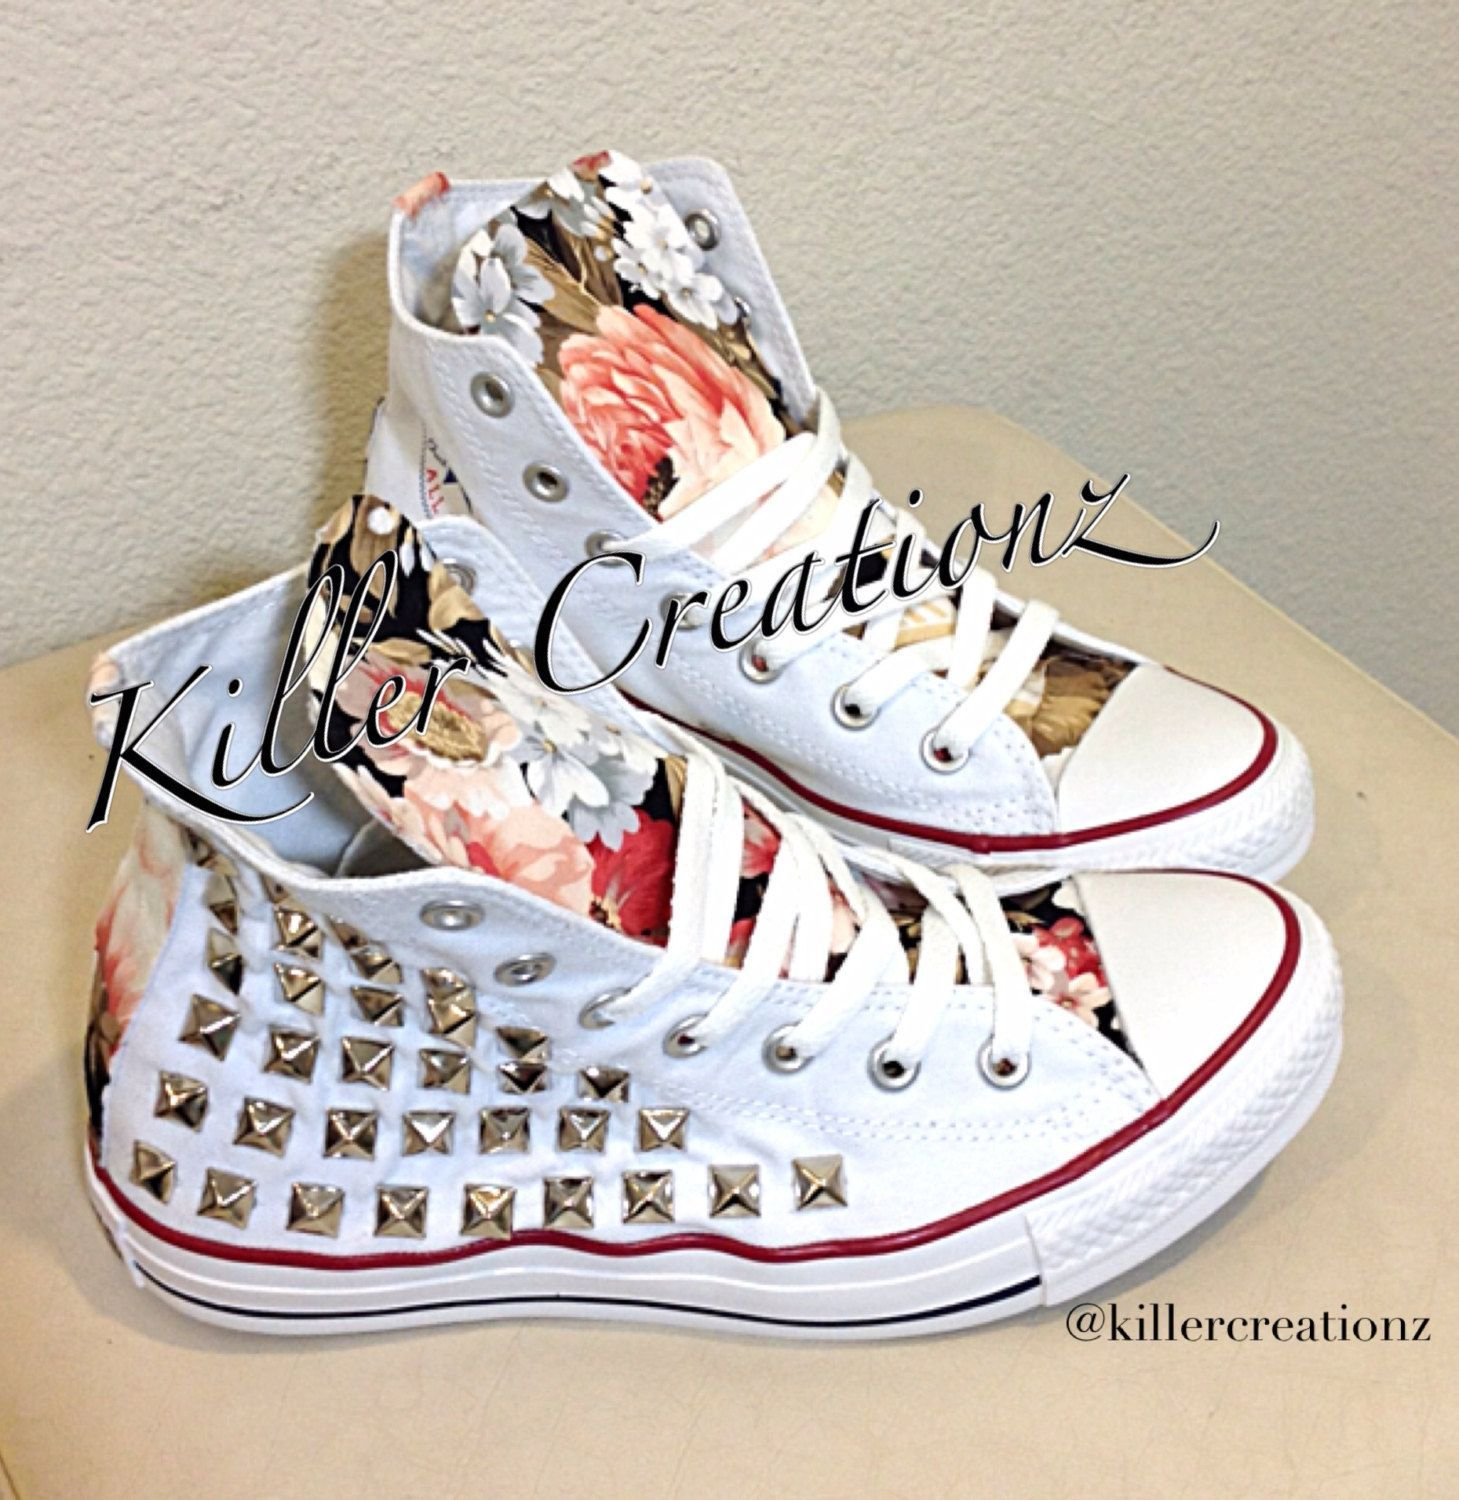 ac55b52e1382 Custom studded Converse Chuck Taylors with floral design ANY SIZE COLOR ( made to order) by KillerCreationz on Etsy  Promshoes